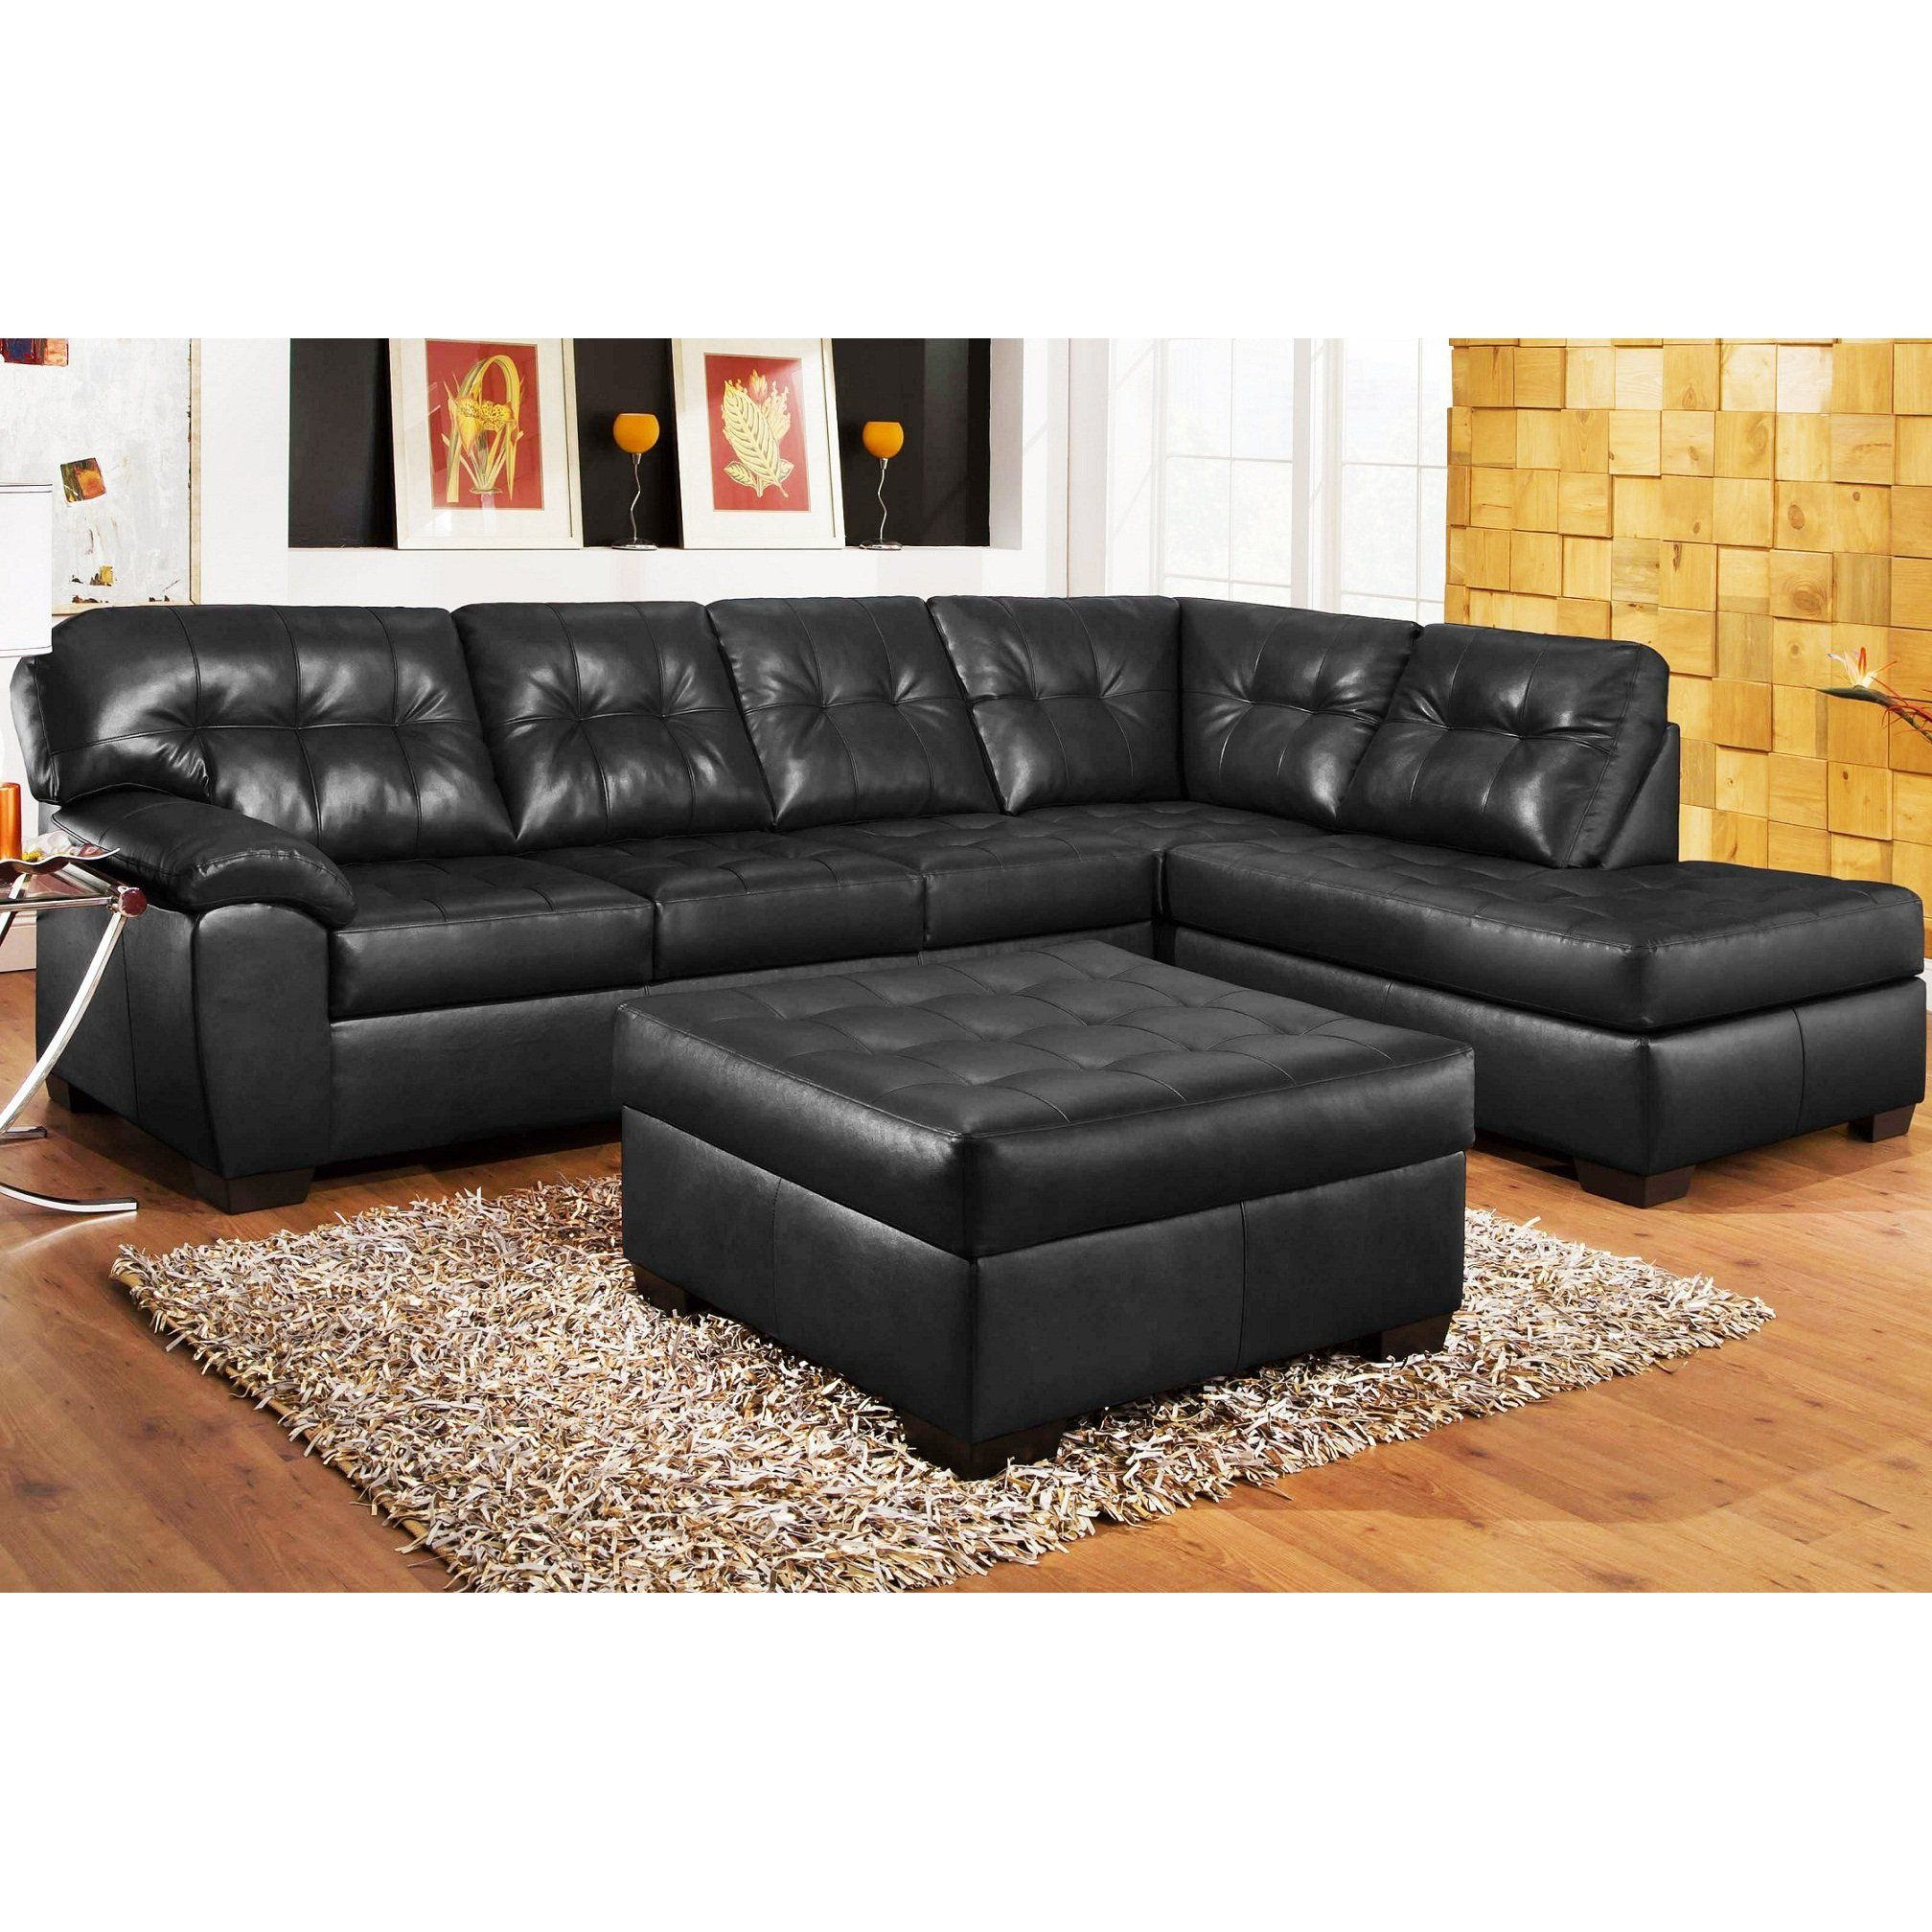 3PC Black Leather Sectional Sofa , Chaise , Ottoman set ...